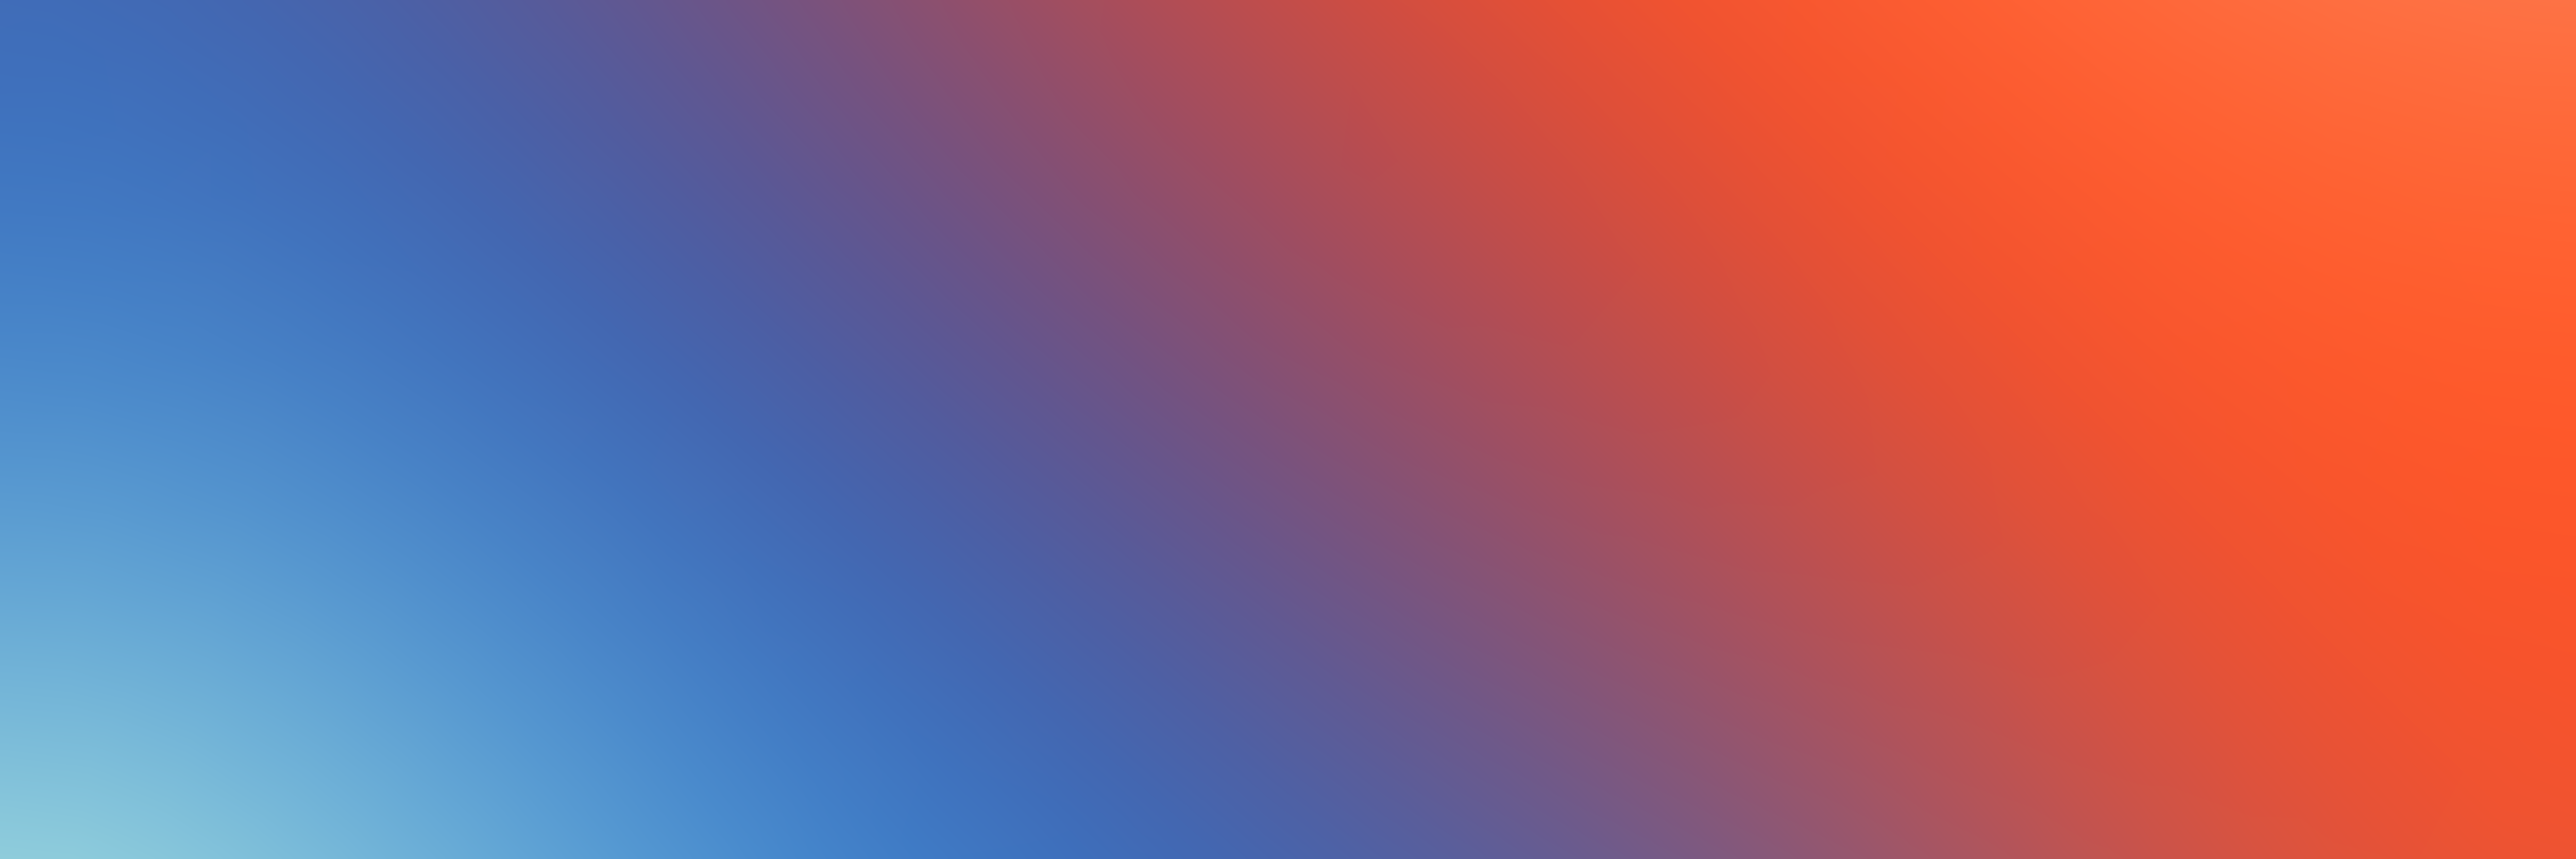 blue to red gradient